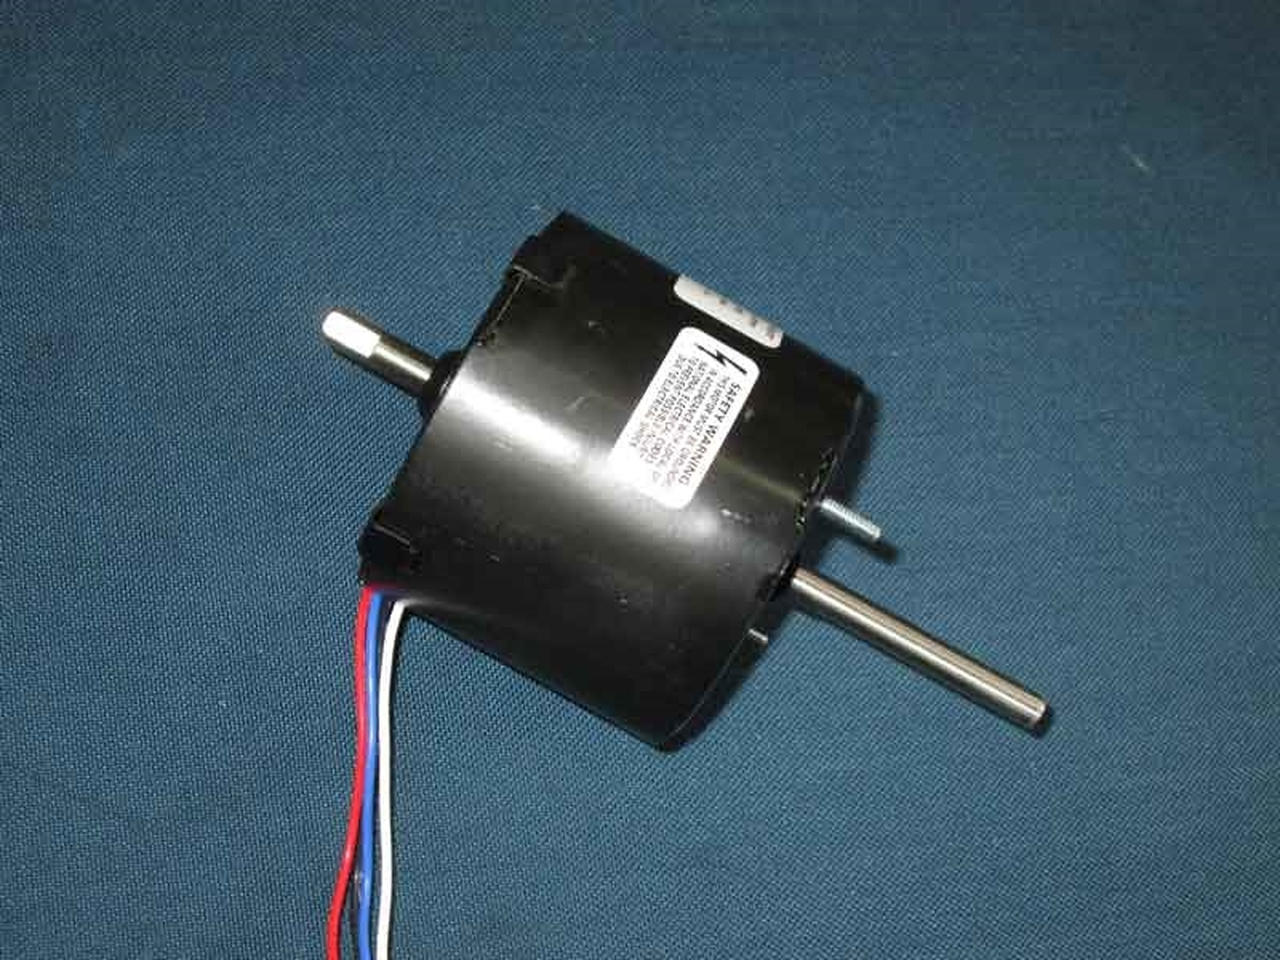 1MBS2 2__33606.1493896283?c=2 3 speed blower motor (old style) 1mbs1 Blower Motor Relay Diagram at readyjetset.co